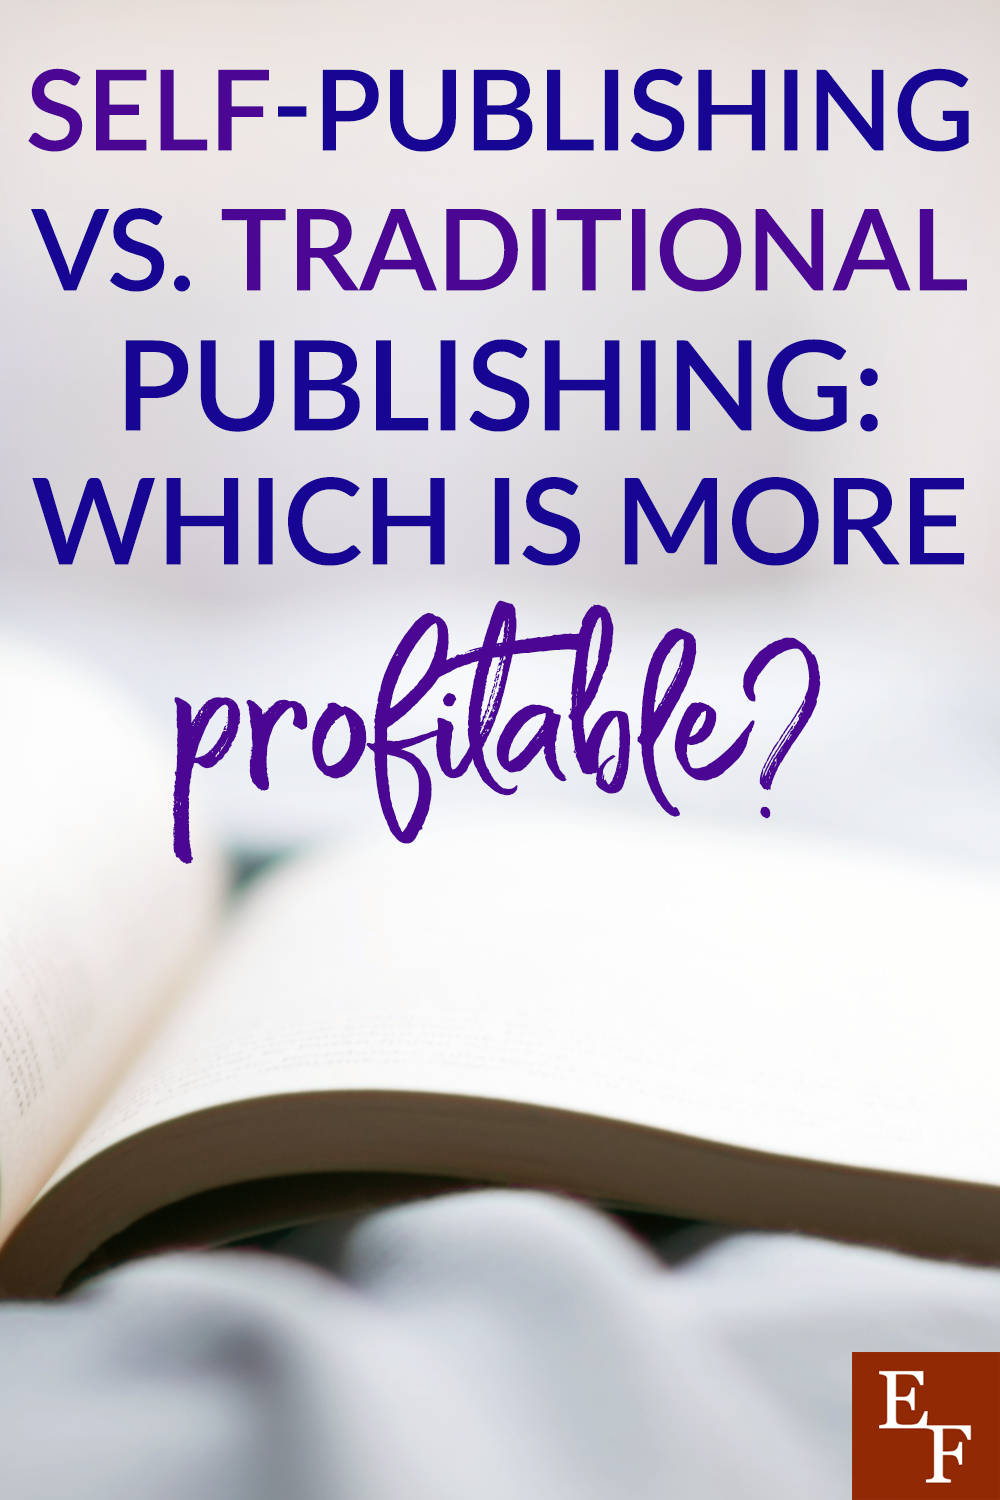 If you are thinking about publishing a book, determining how to publish it is a BIG decision. So, is self-publishing or traditional more profitable?